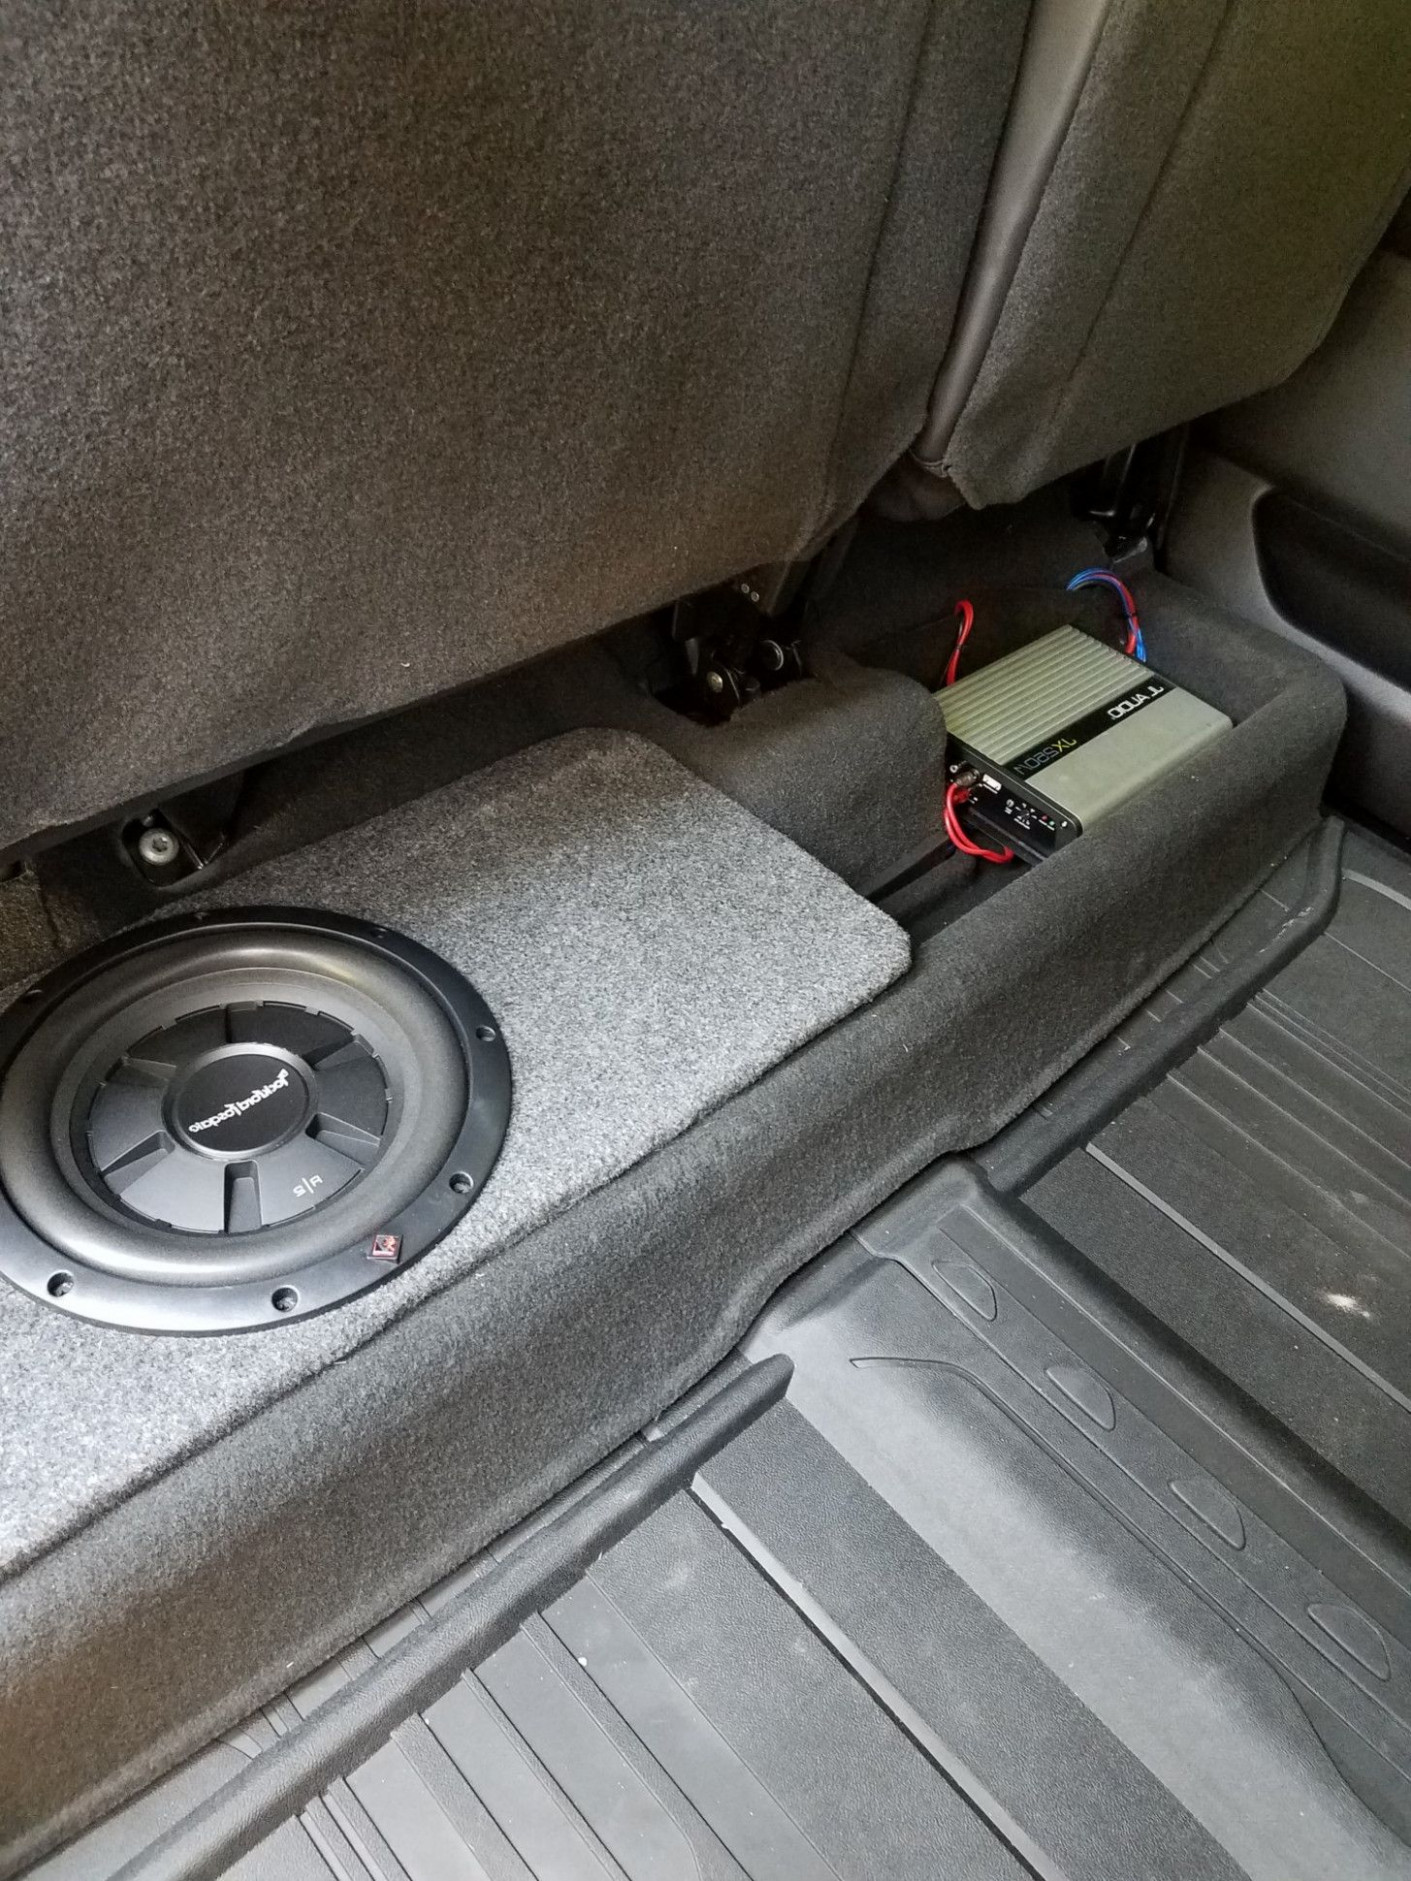 Attending 6 GMC Kicker Subwoofer Can Be A Disaster If (With ..